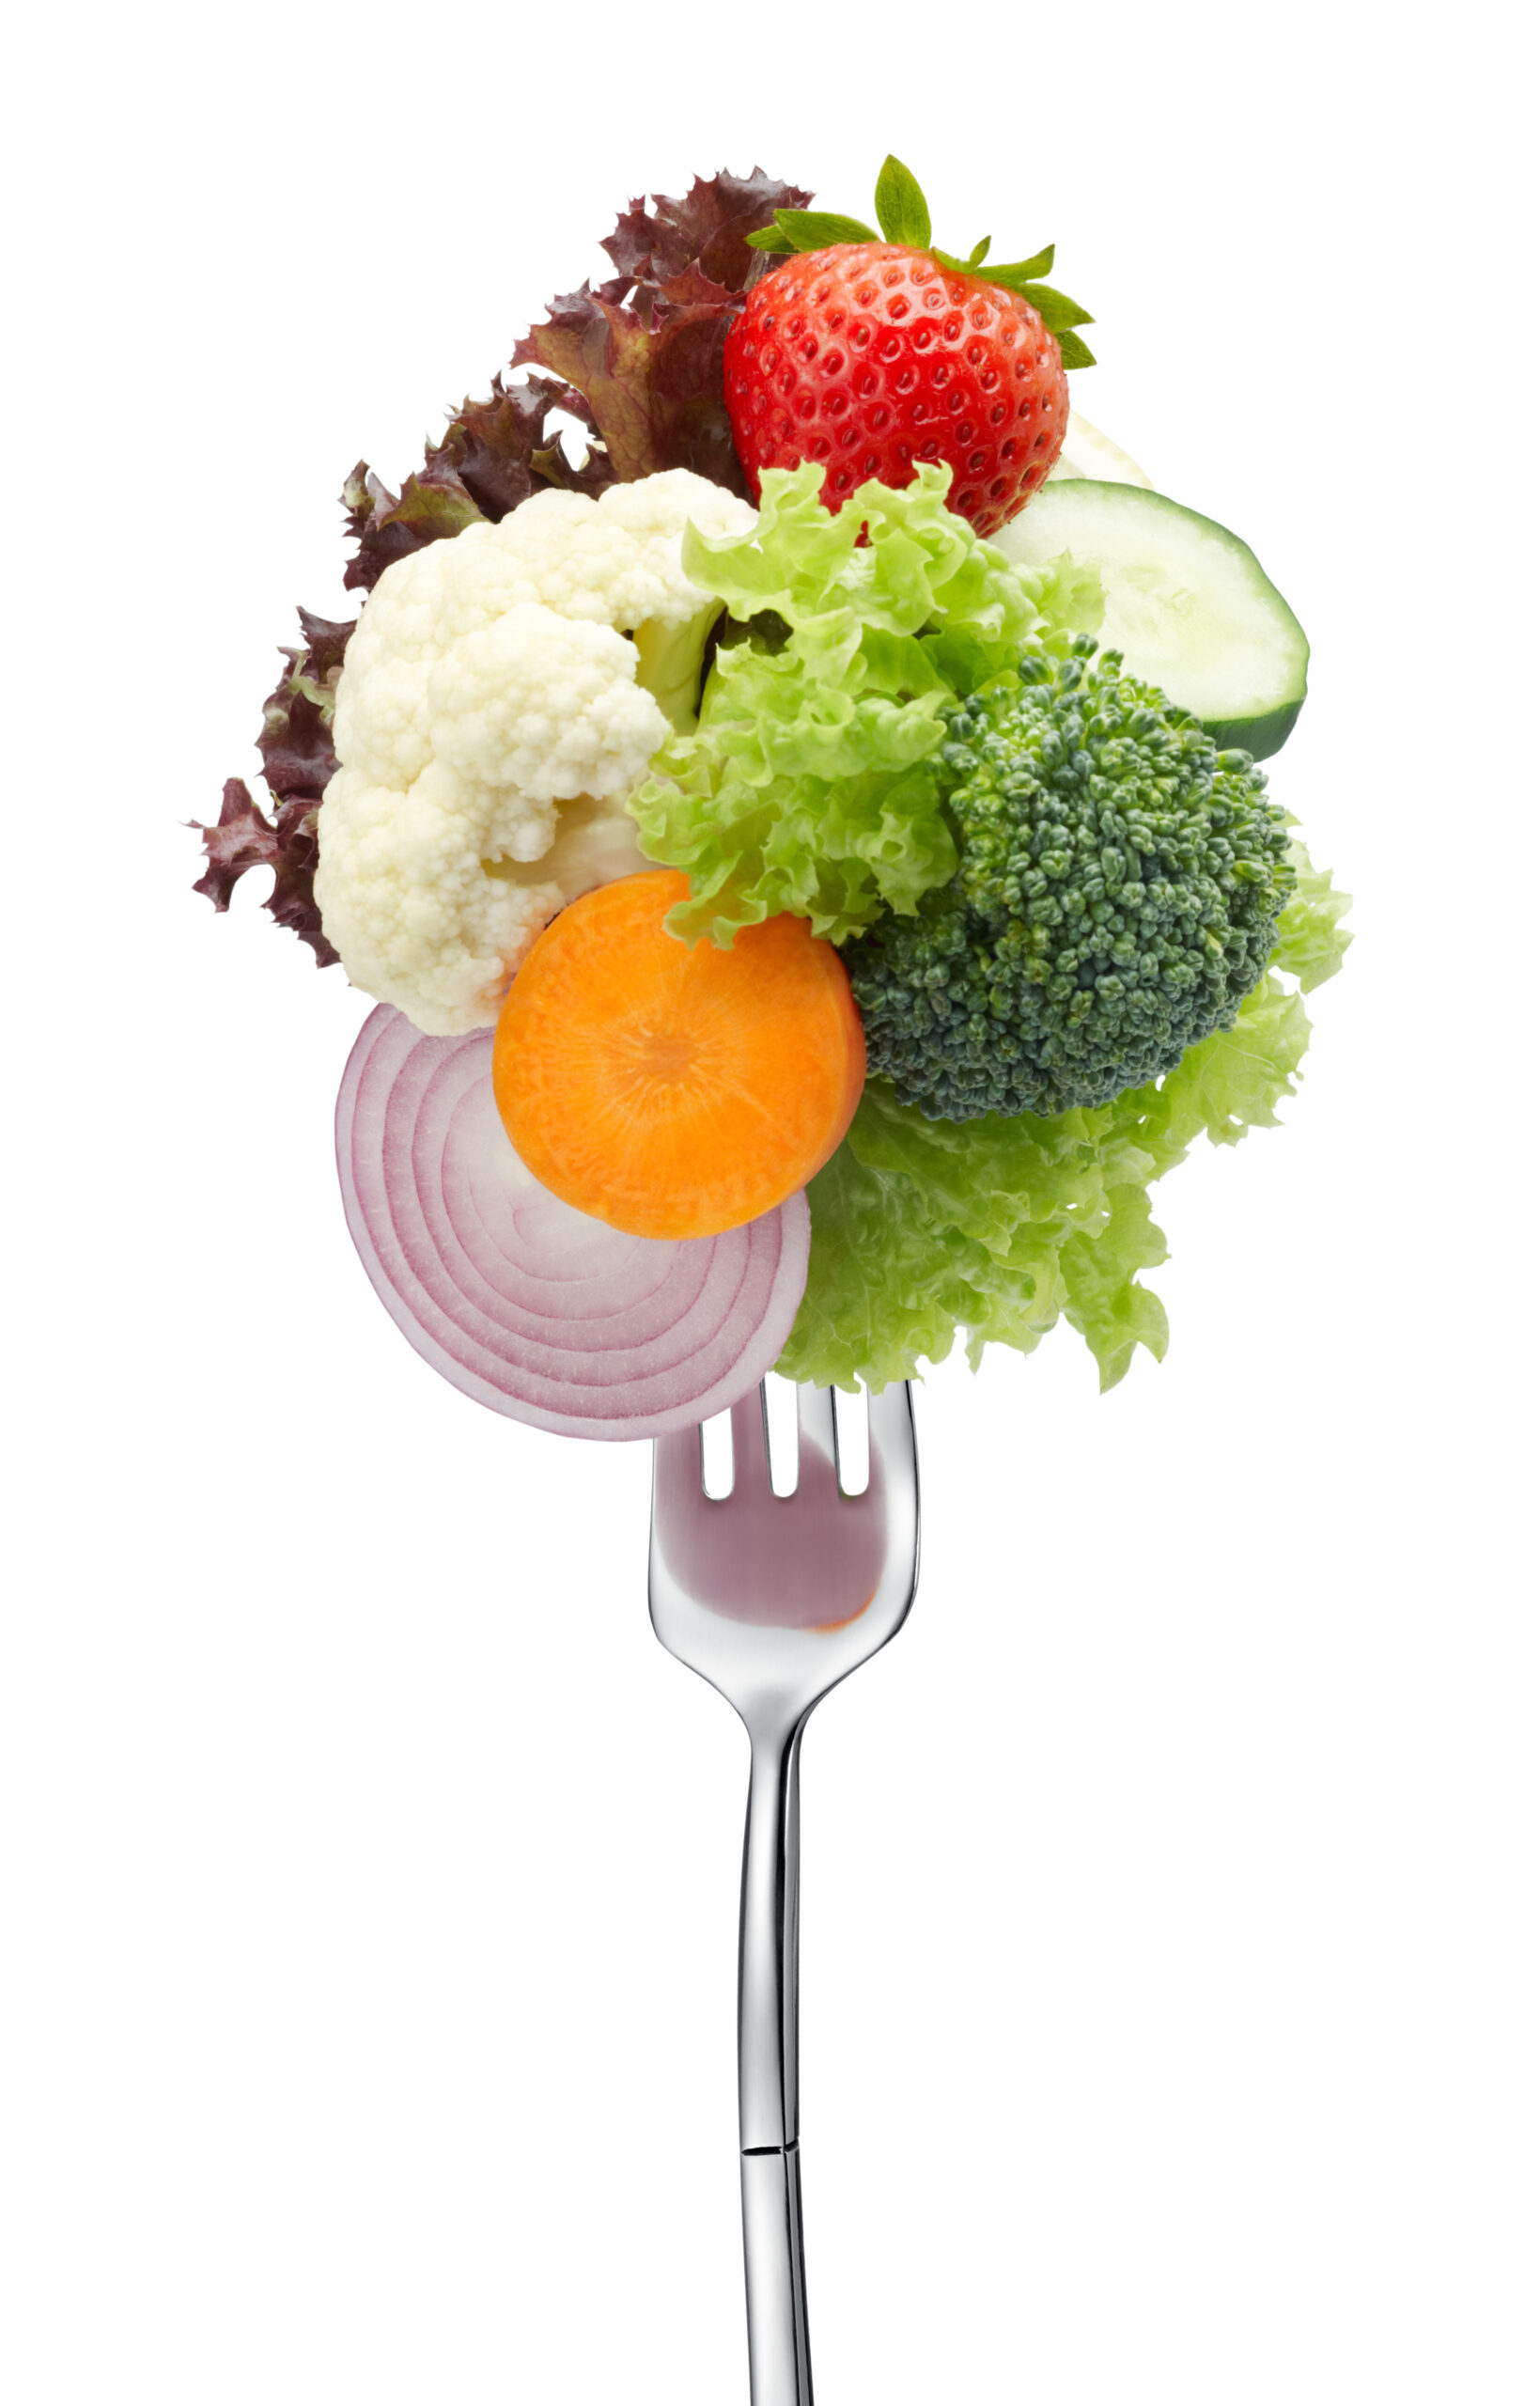 Variety,Of,Vegetables,On,Fork,Isolated,On,White